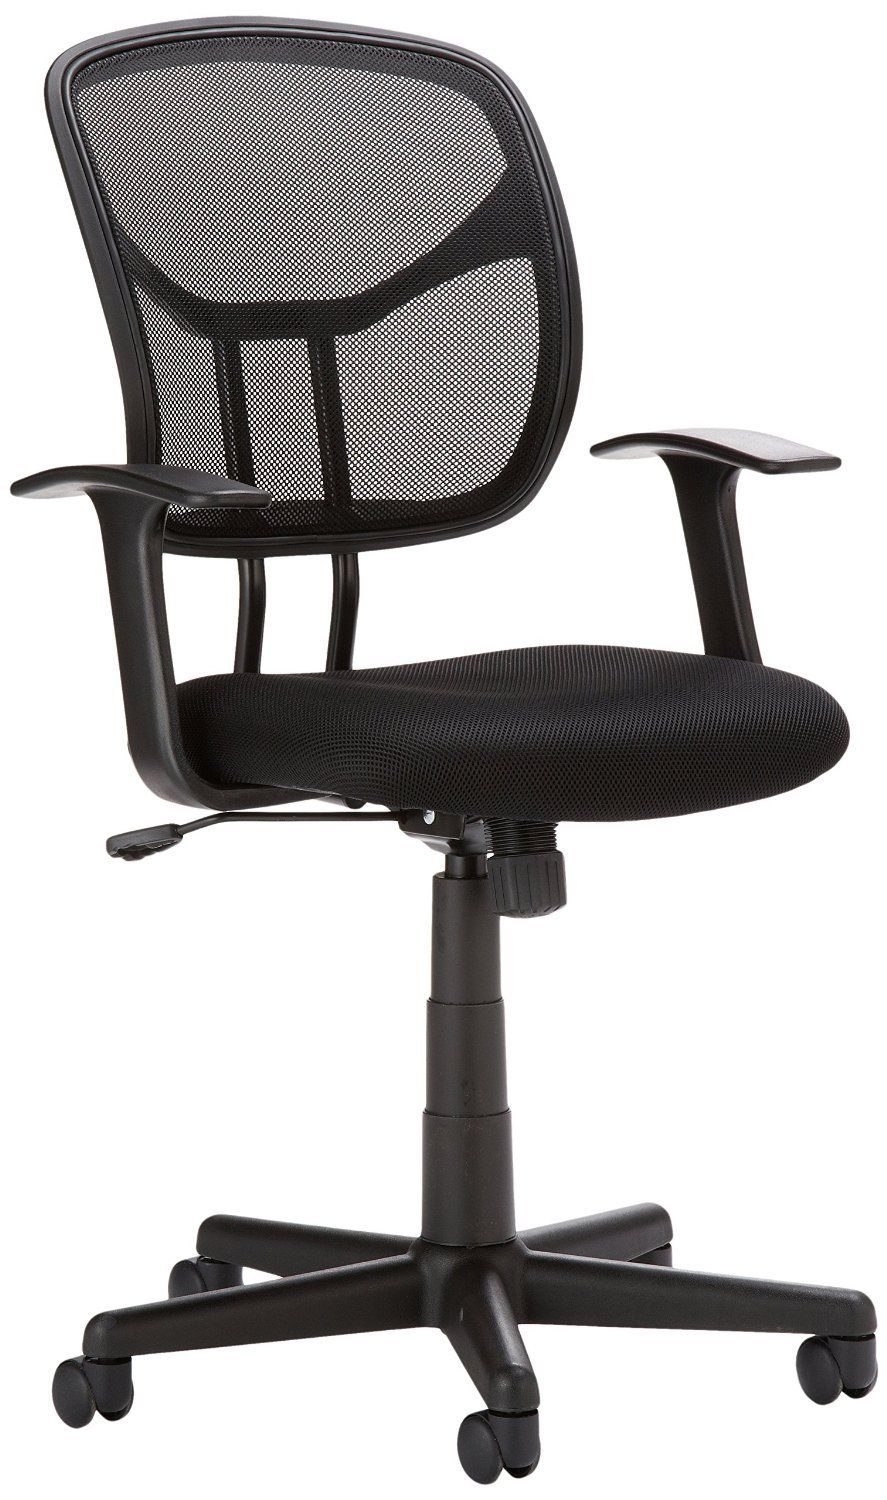 Goes Here Student Desk Chair With Mesh Backing AmazonBasics For Office Computer Description